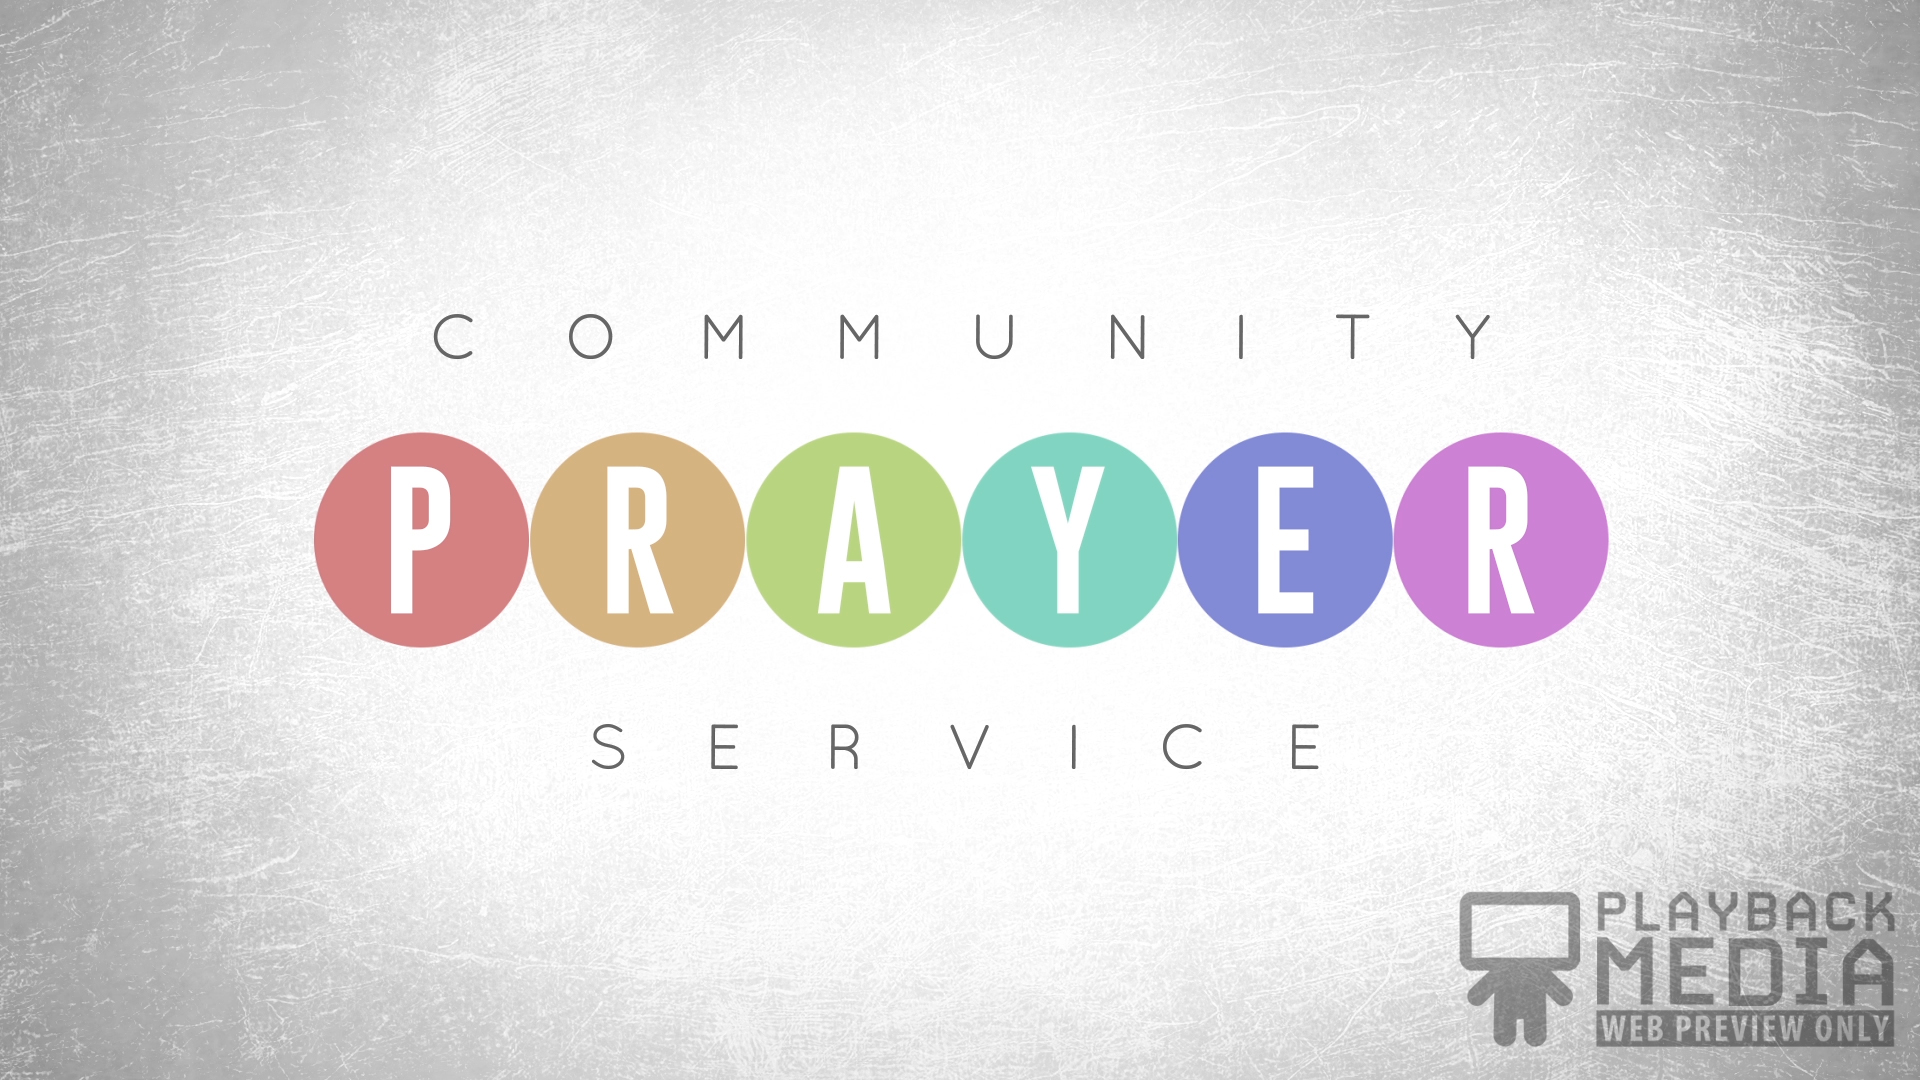 Event Planner Prayer Motion Image